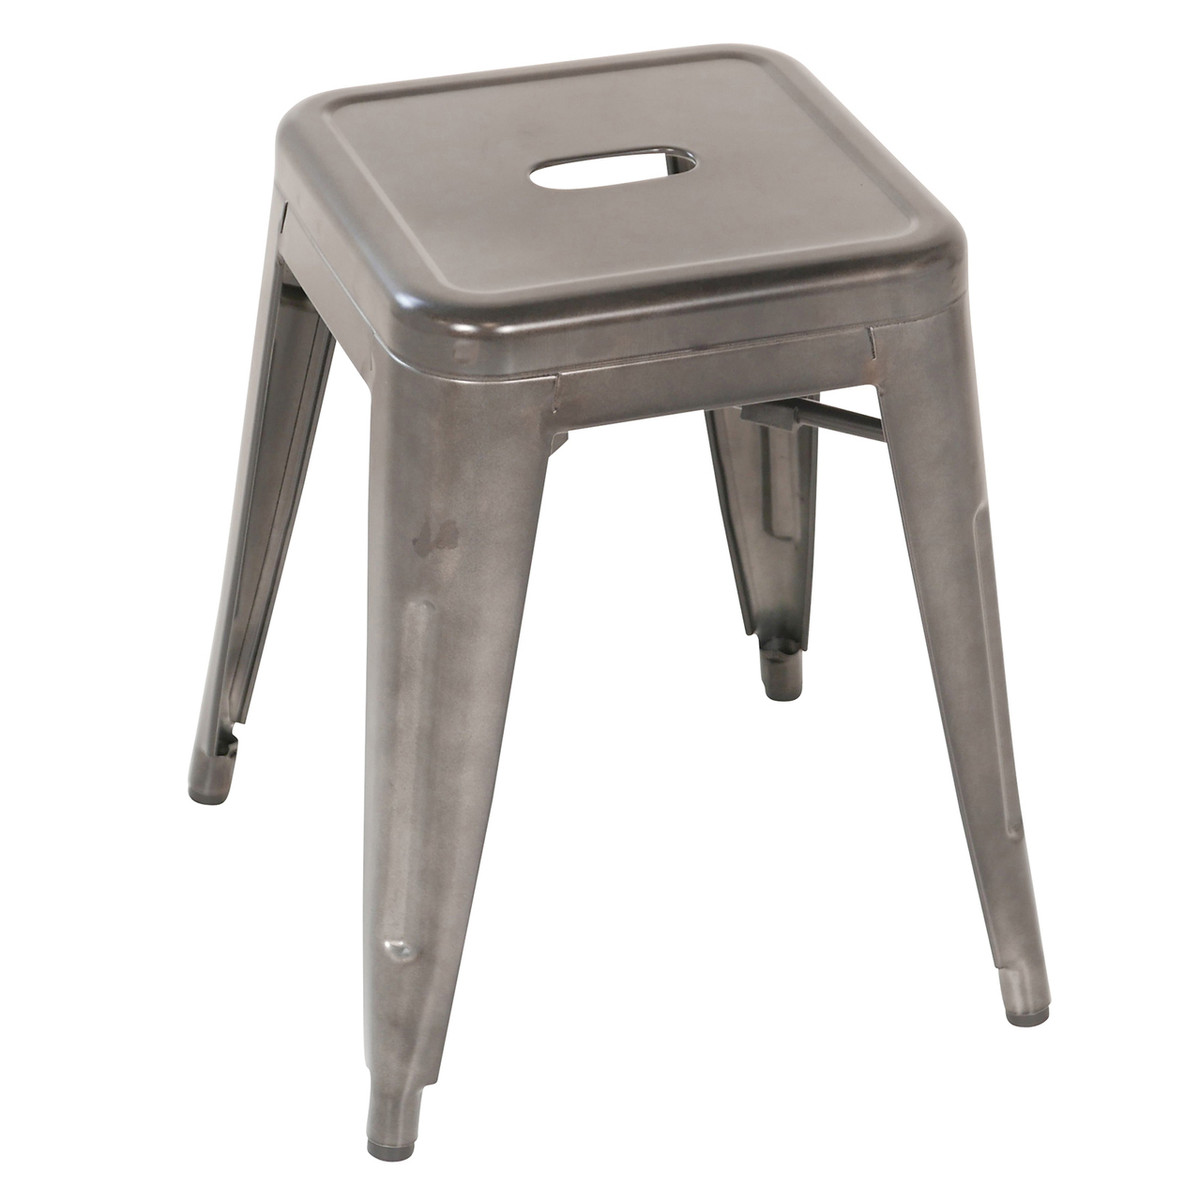 distressed industrial furniture. Metal 18 Inch Stool - Industrial Distressed Gun Furniture W